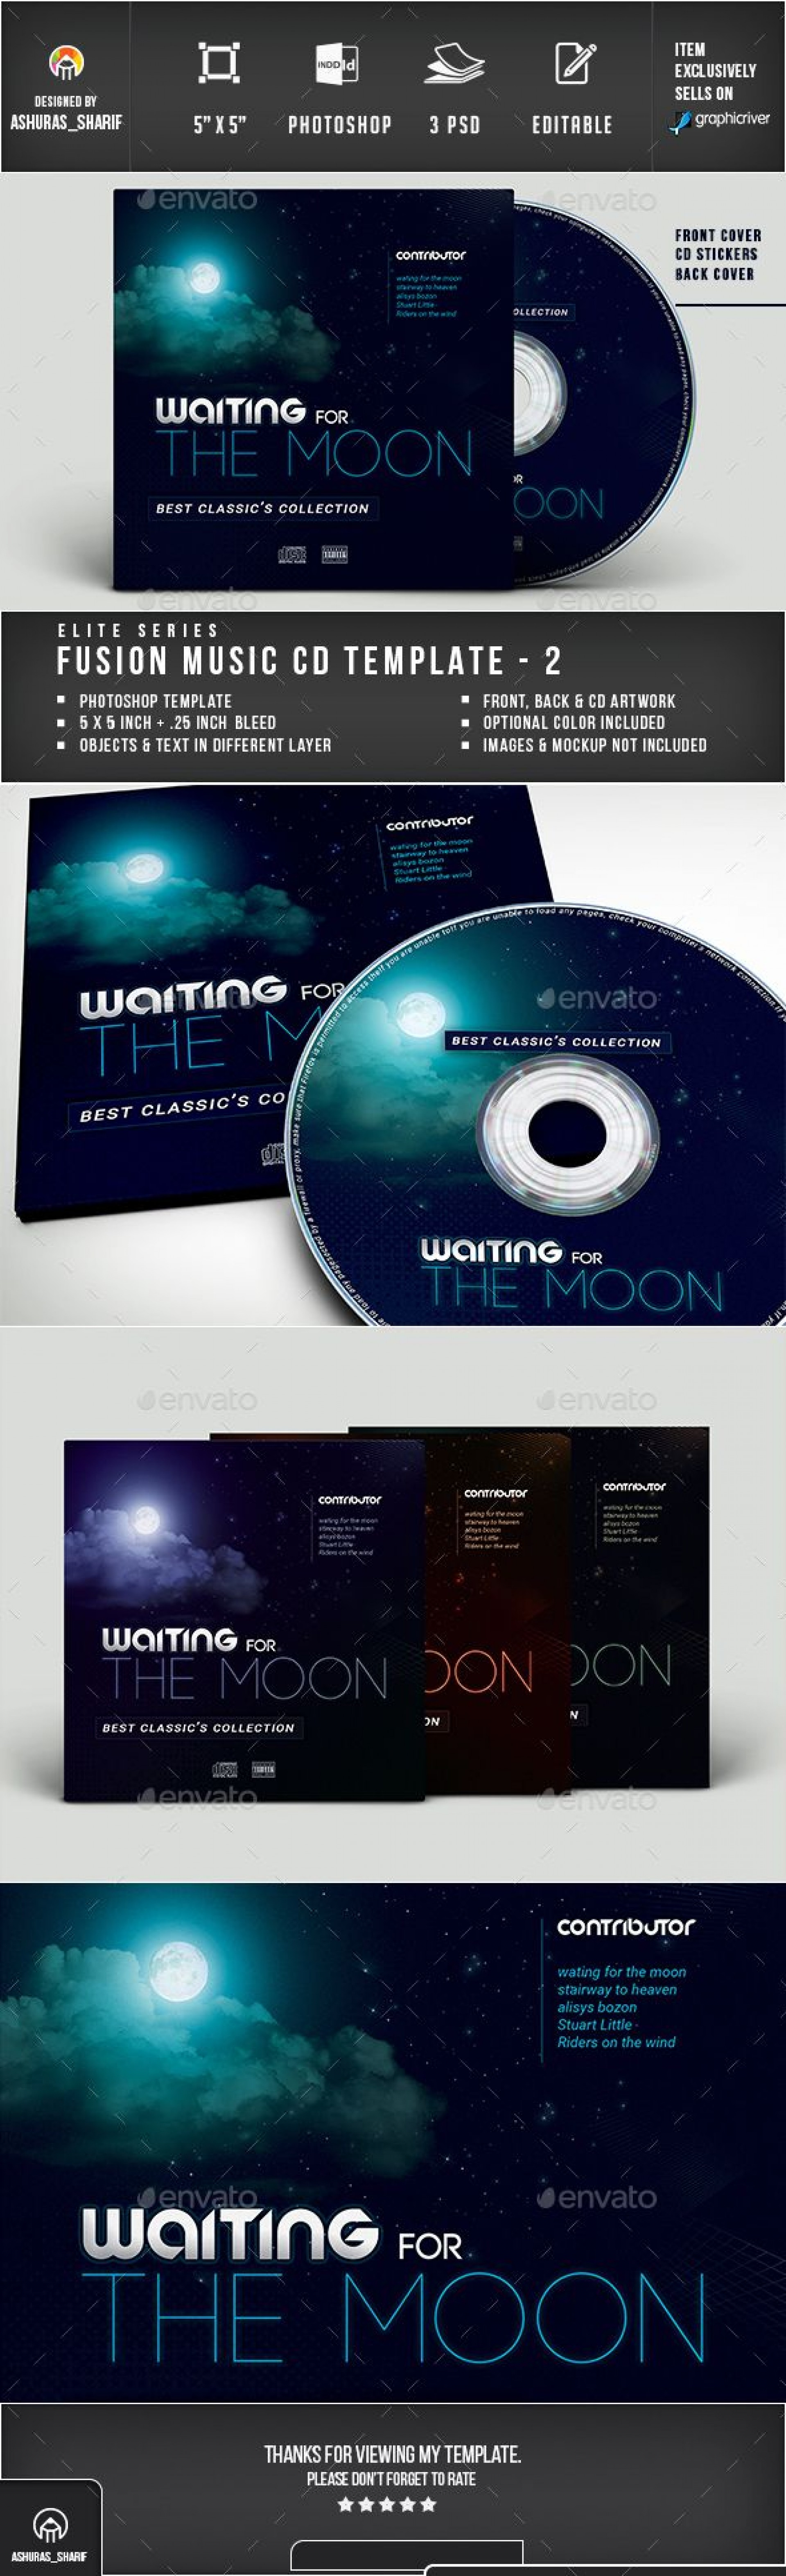 006 Impressive Cd Cover Design Template Photoshop Example  Label Psd Free1920